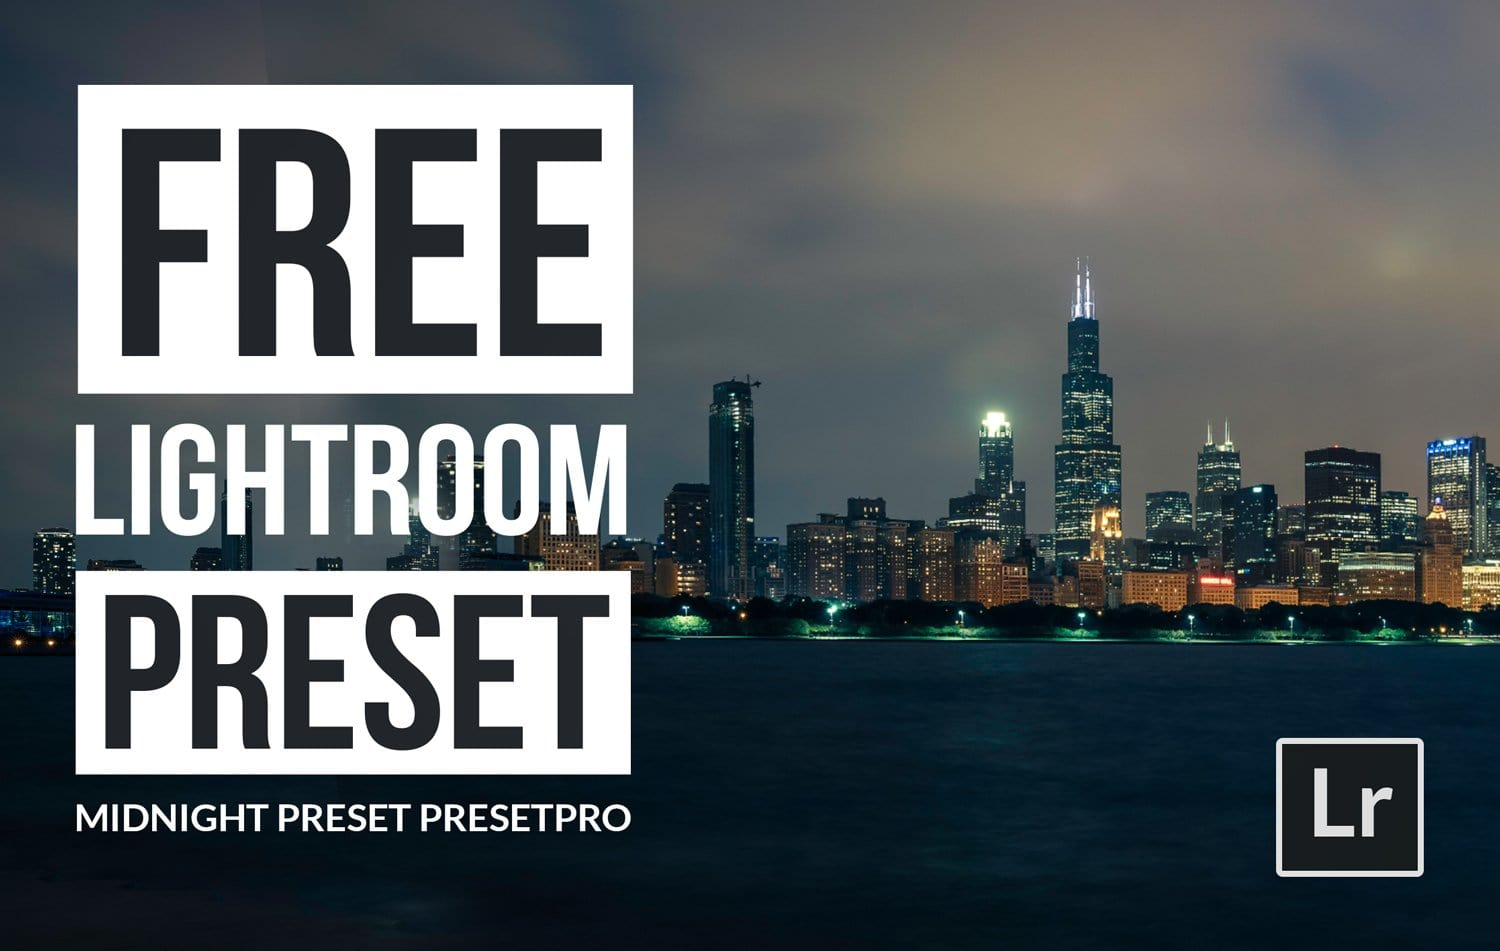 Free-Lightroom-Preset-Midnight-Cover-Presetpro.com